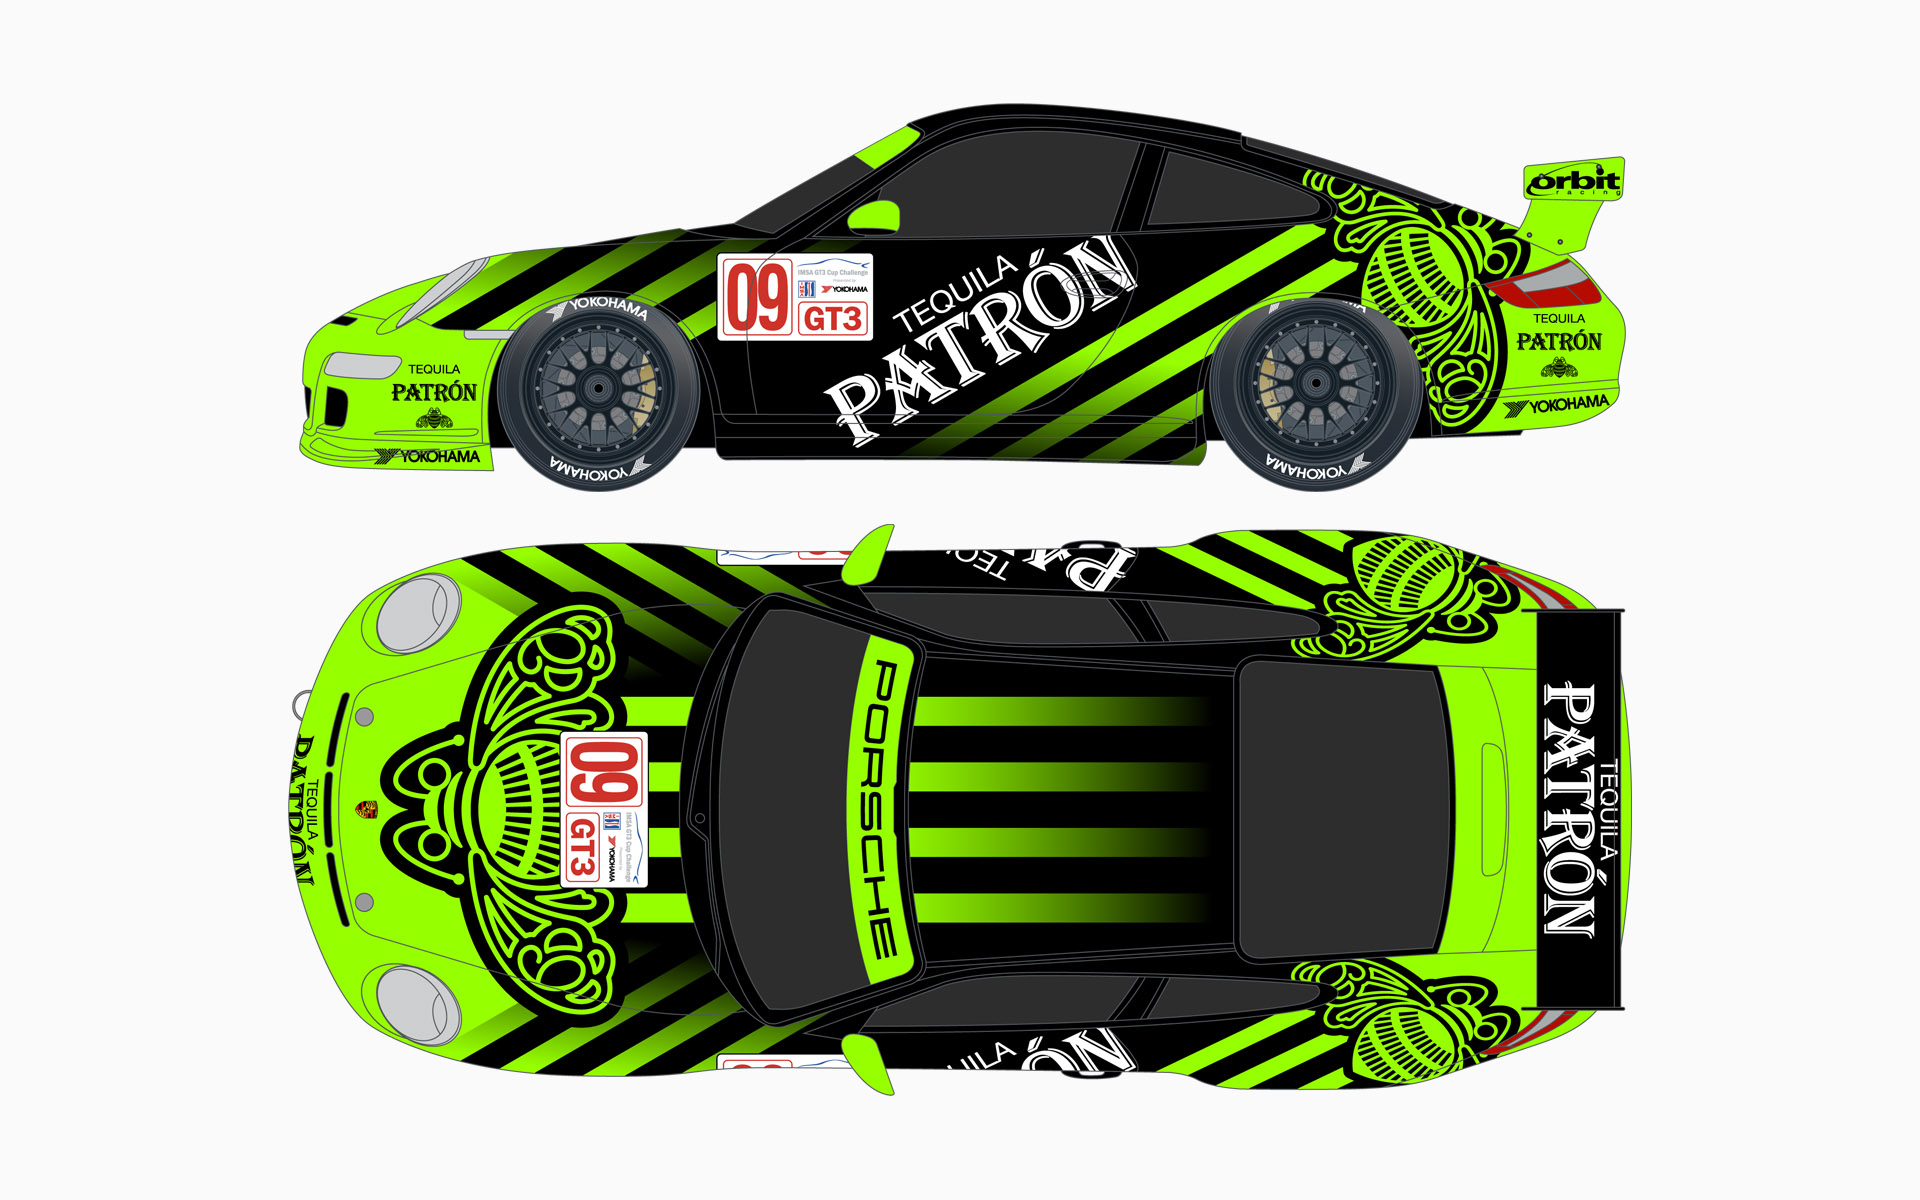 Orbit Racing Pátron Silver Porsche 911 GT3 Cup Livery Elevations